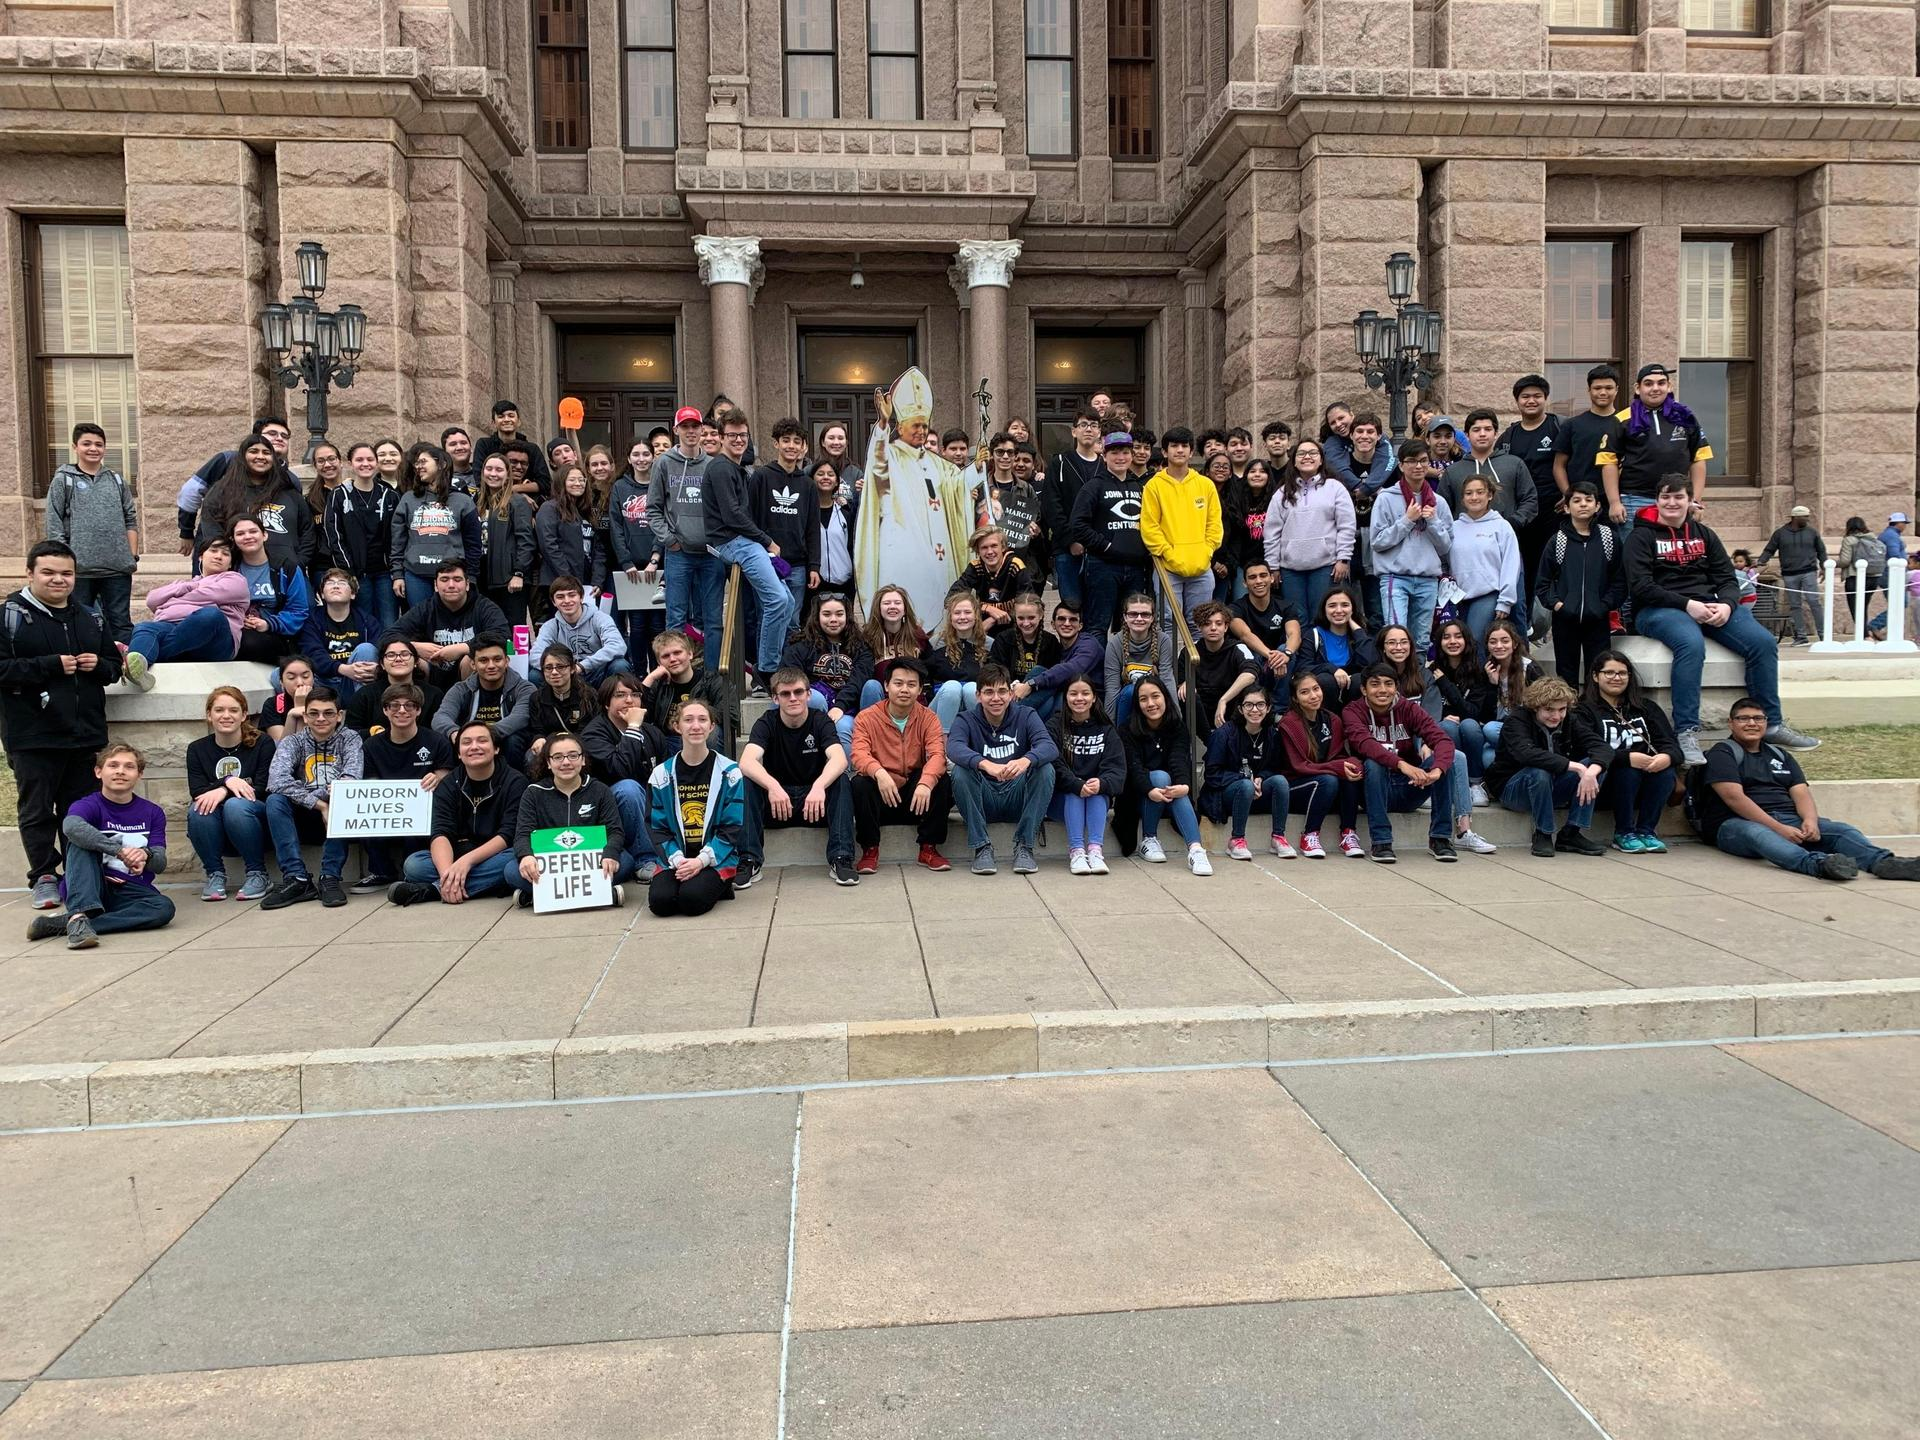 Students in Austin attending Texas Rally for Life